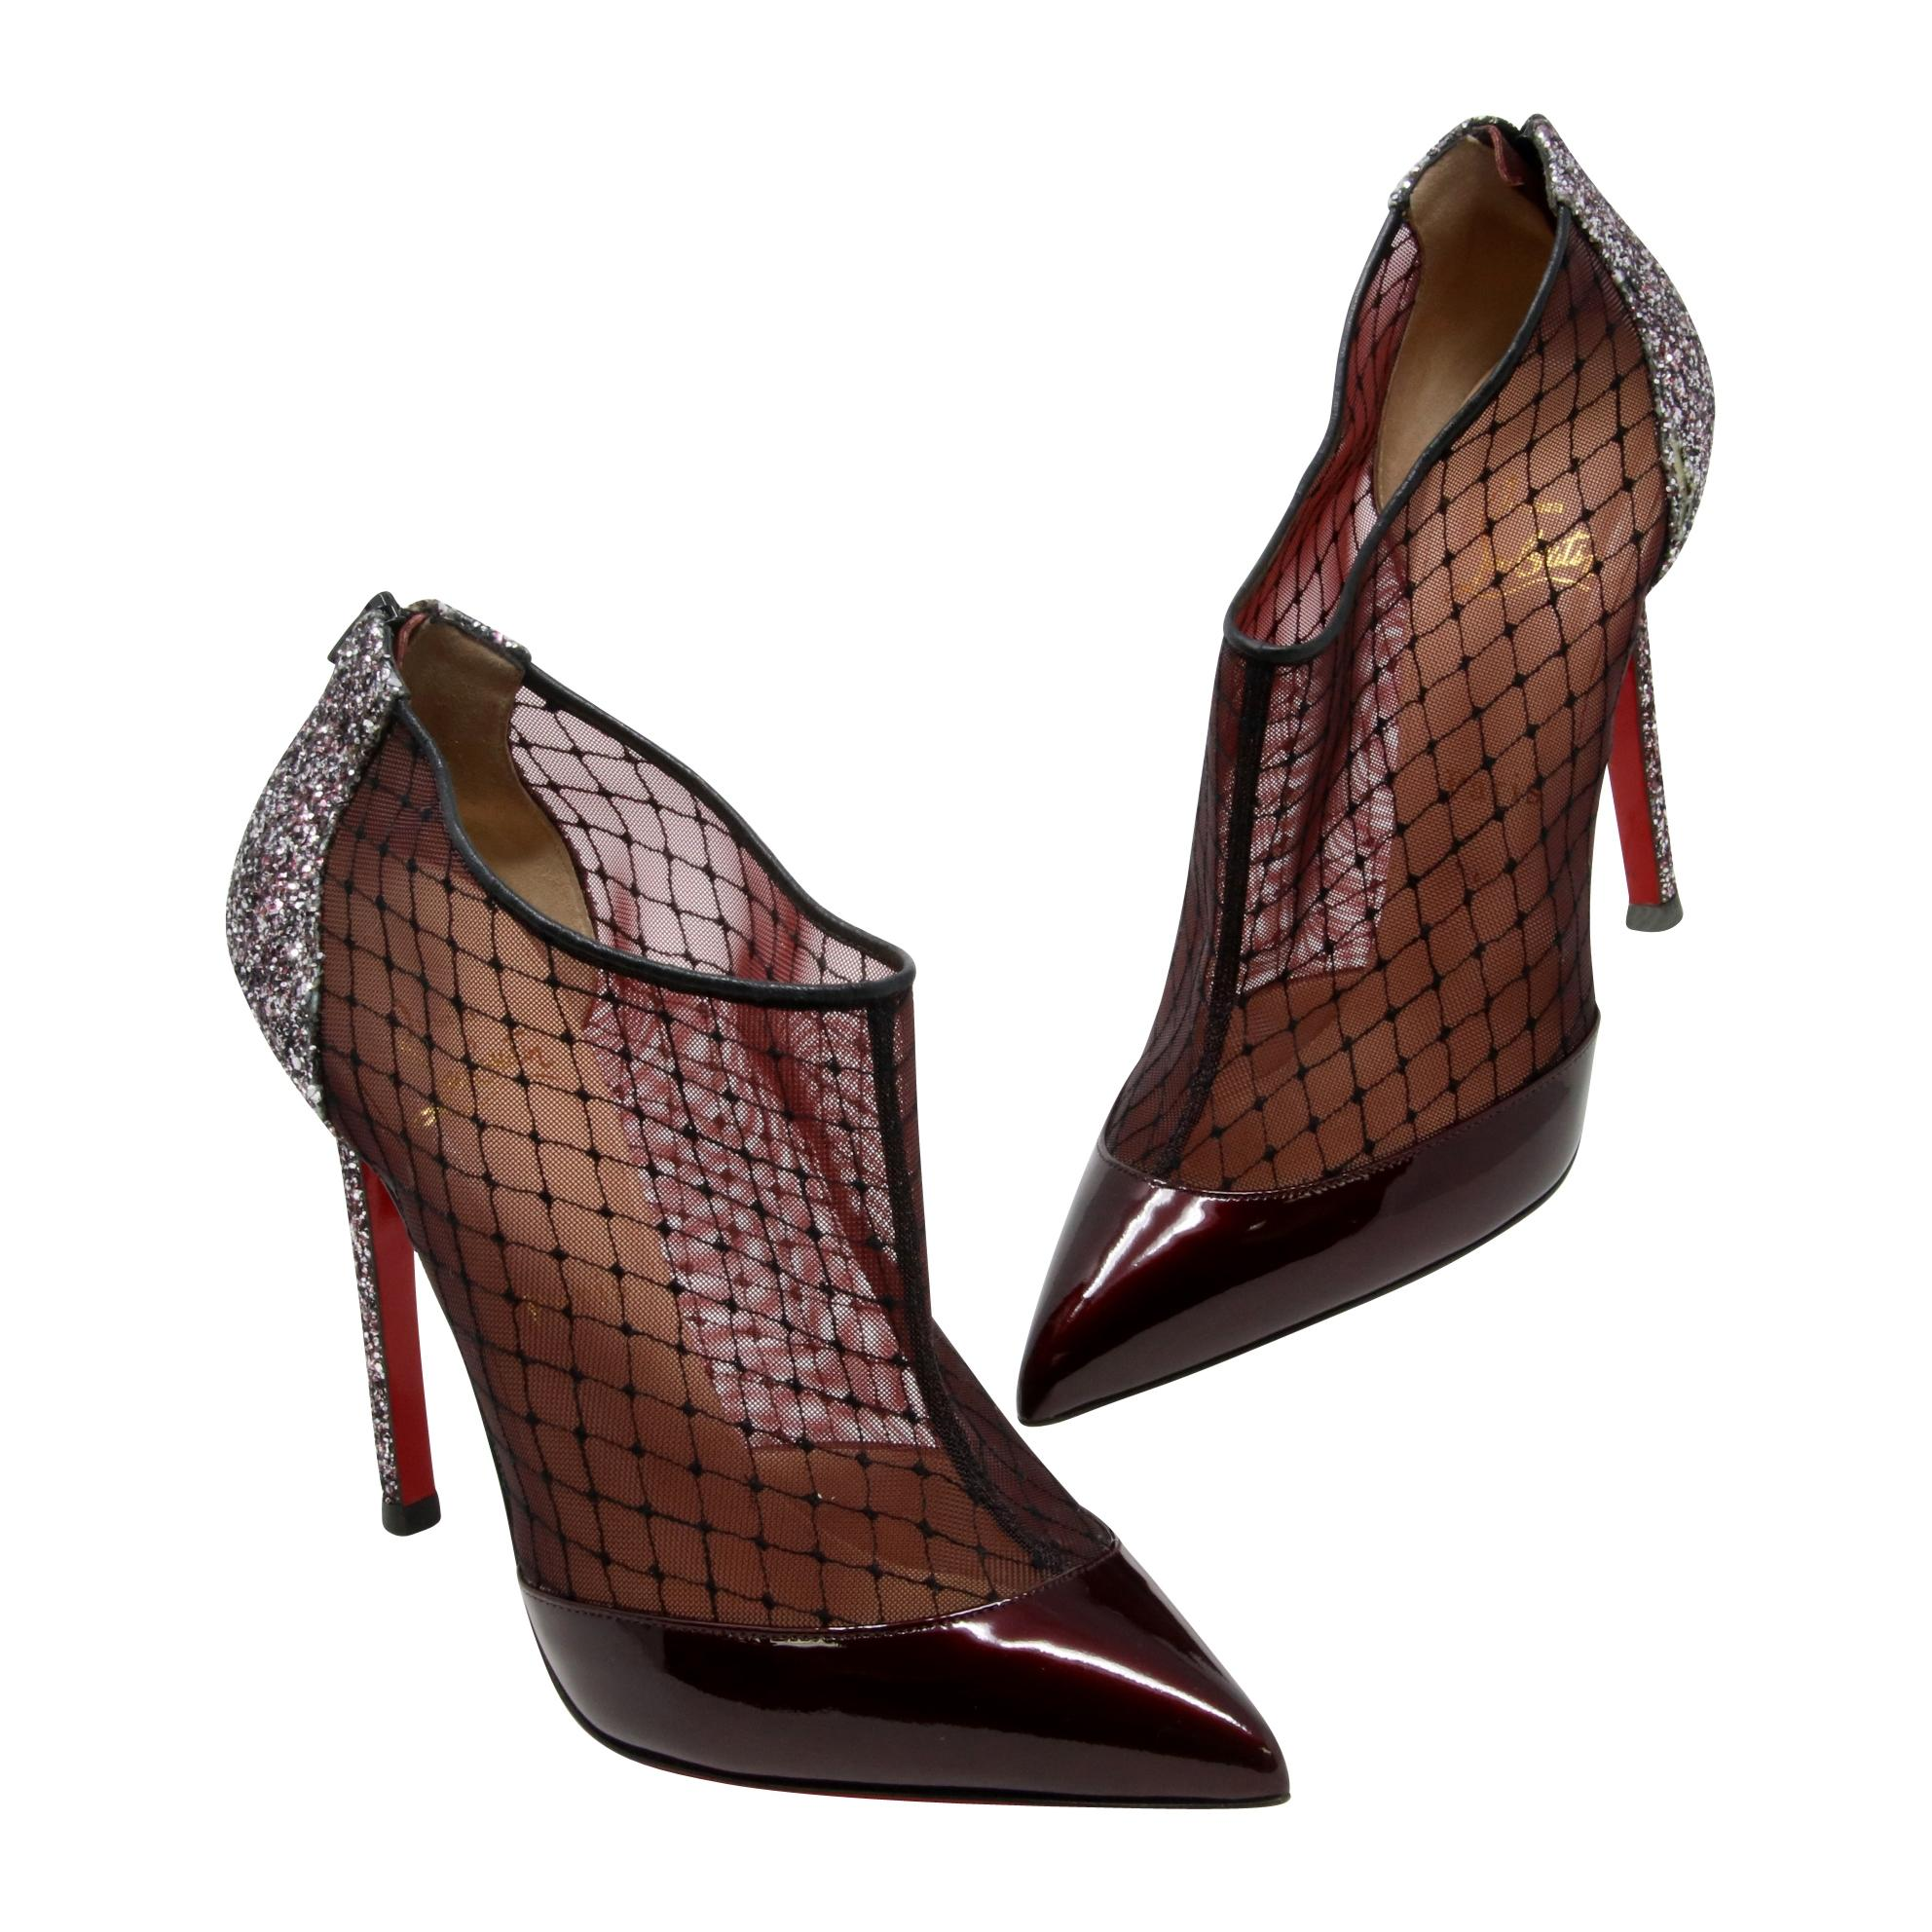 sale retailer 7aa2a e8436 Christian Louboutin Multicolor Burgundy Fillette Patent ...